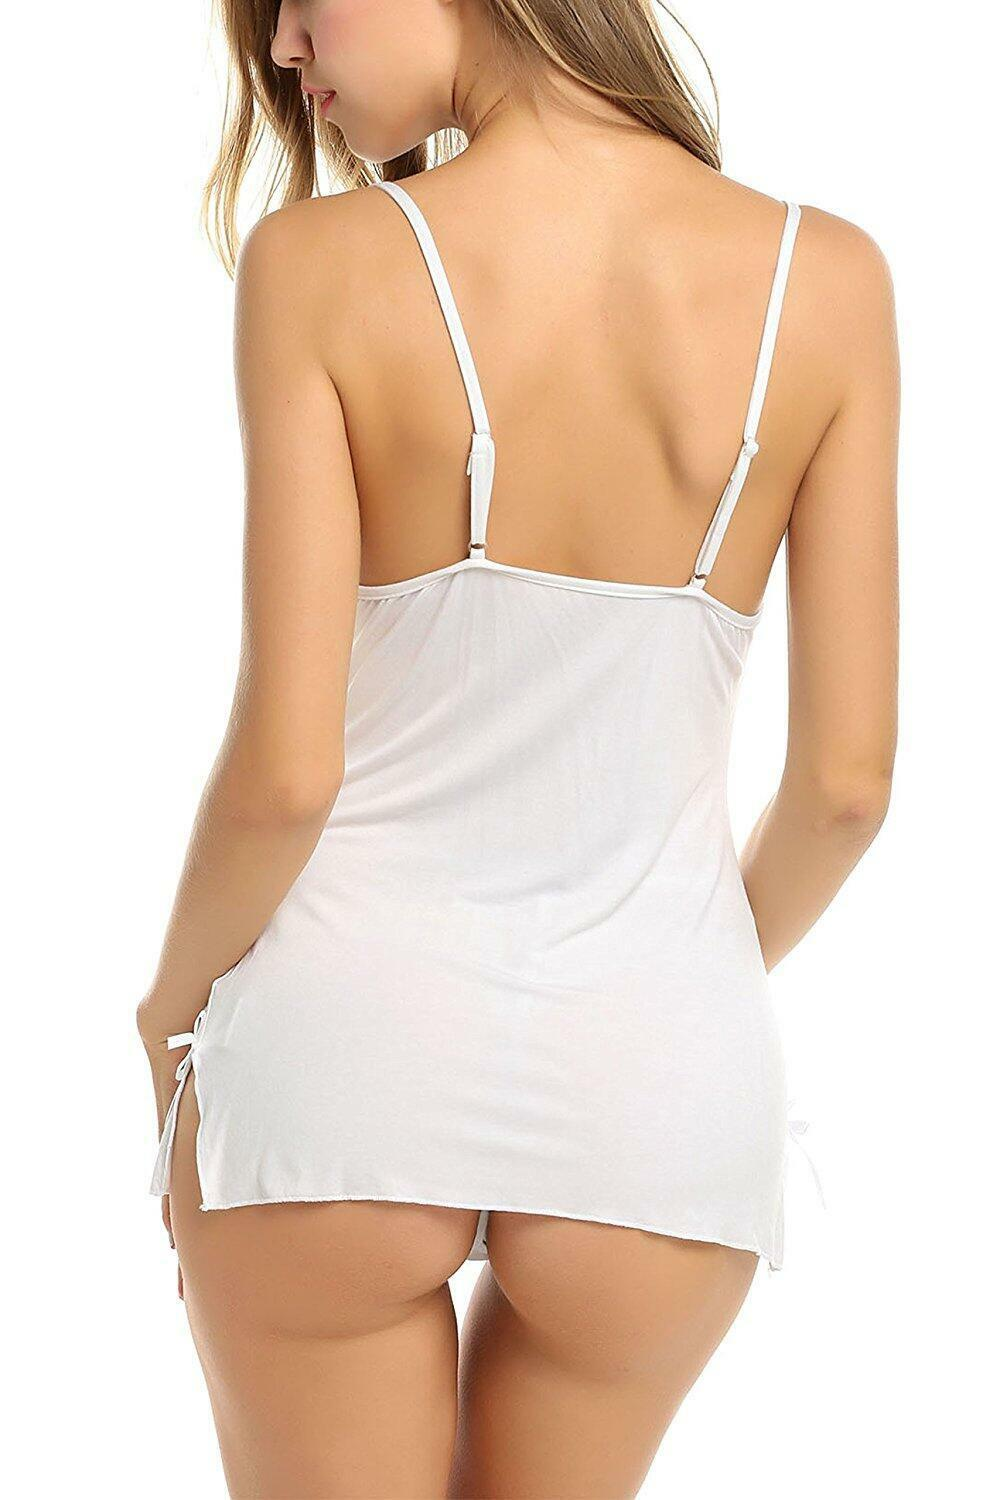 Women Sexy Sleepwear Lace Lingerie Chemise Nightgown Babydoll Full Slips M-XXL Clothing, Shoes & Accessories